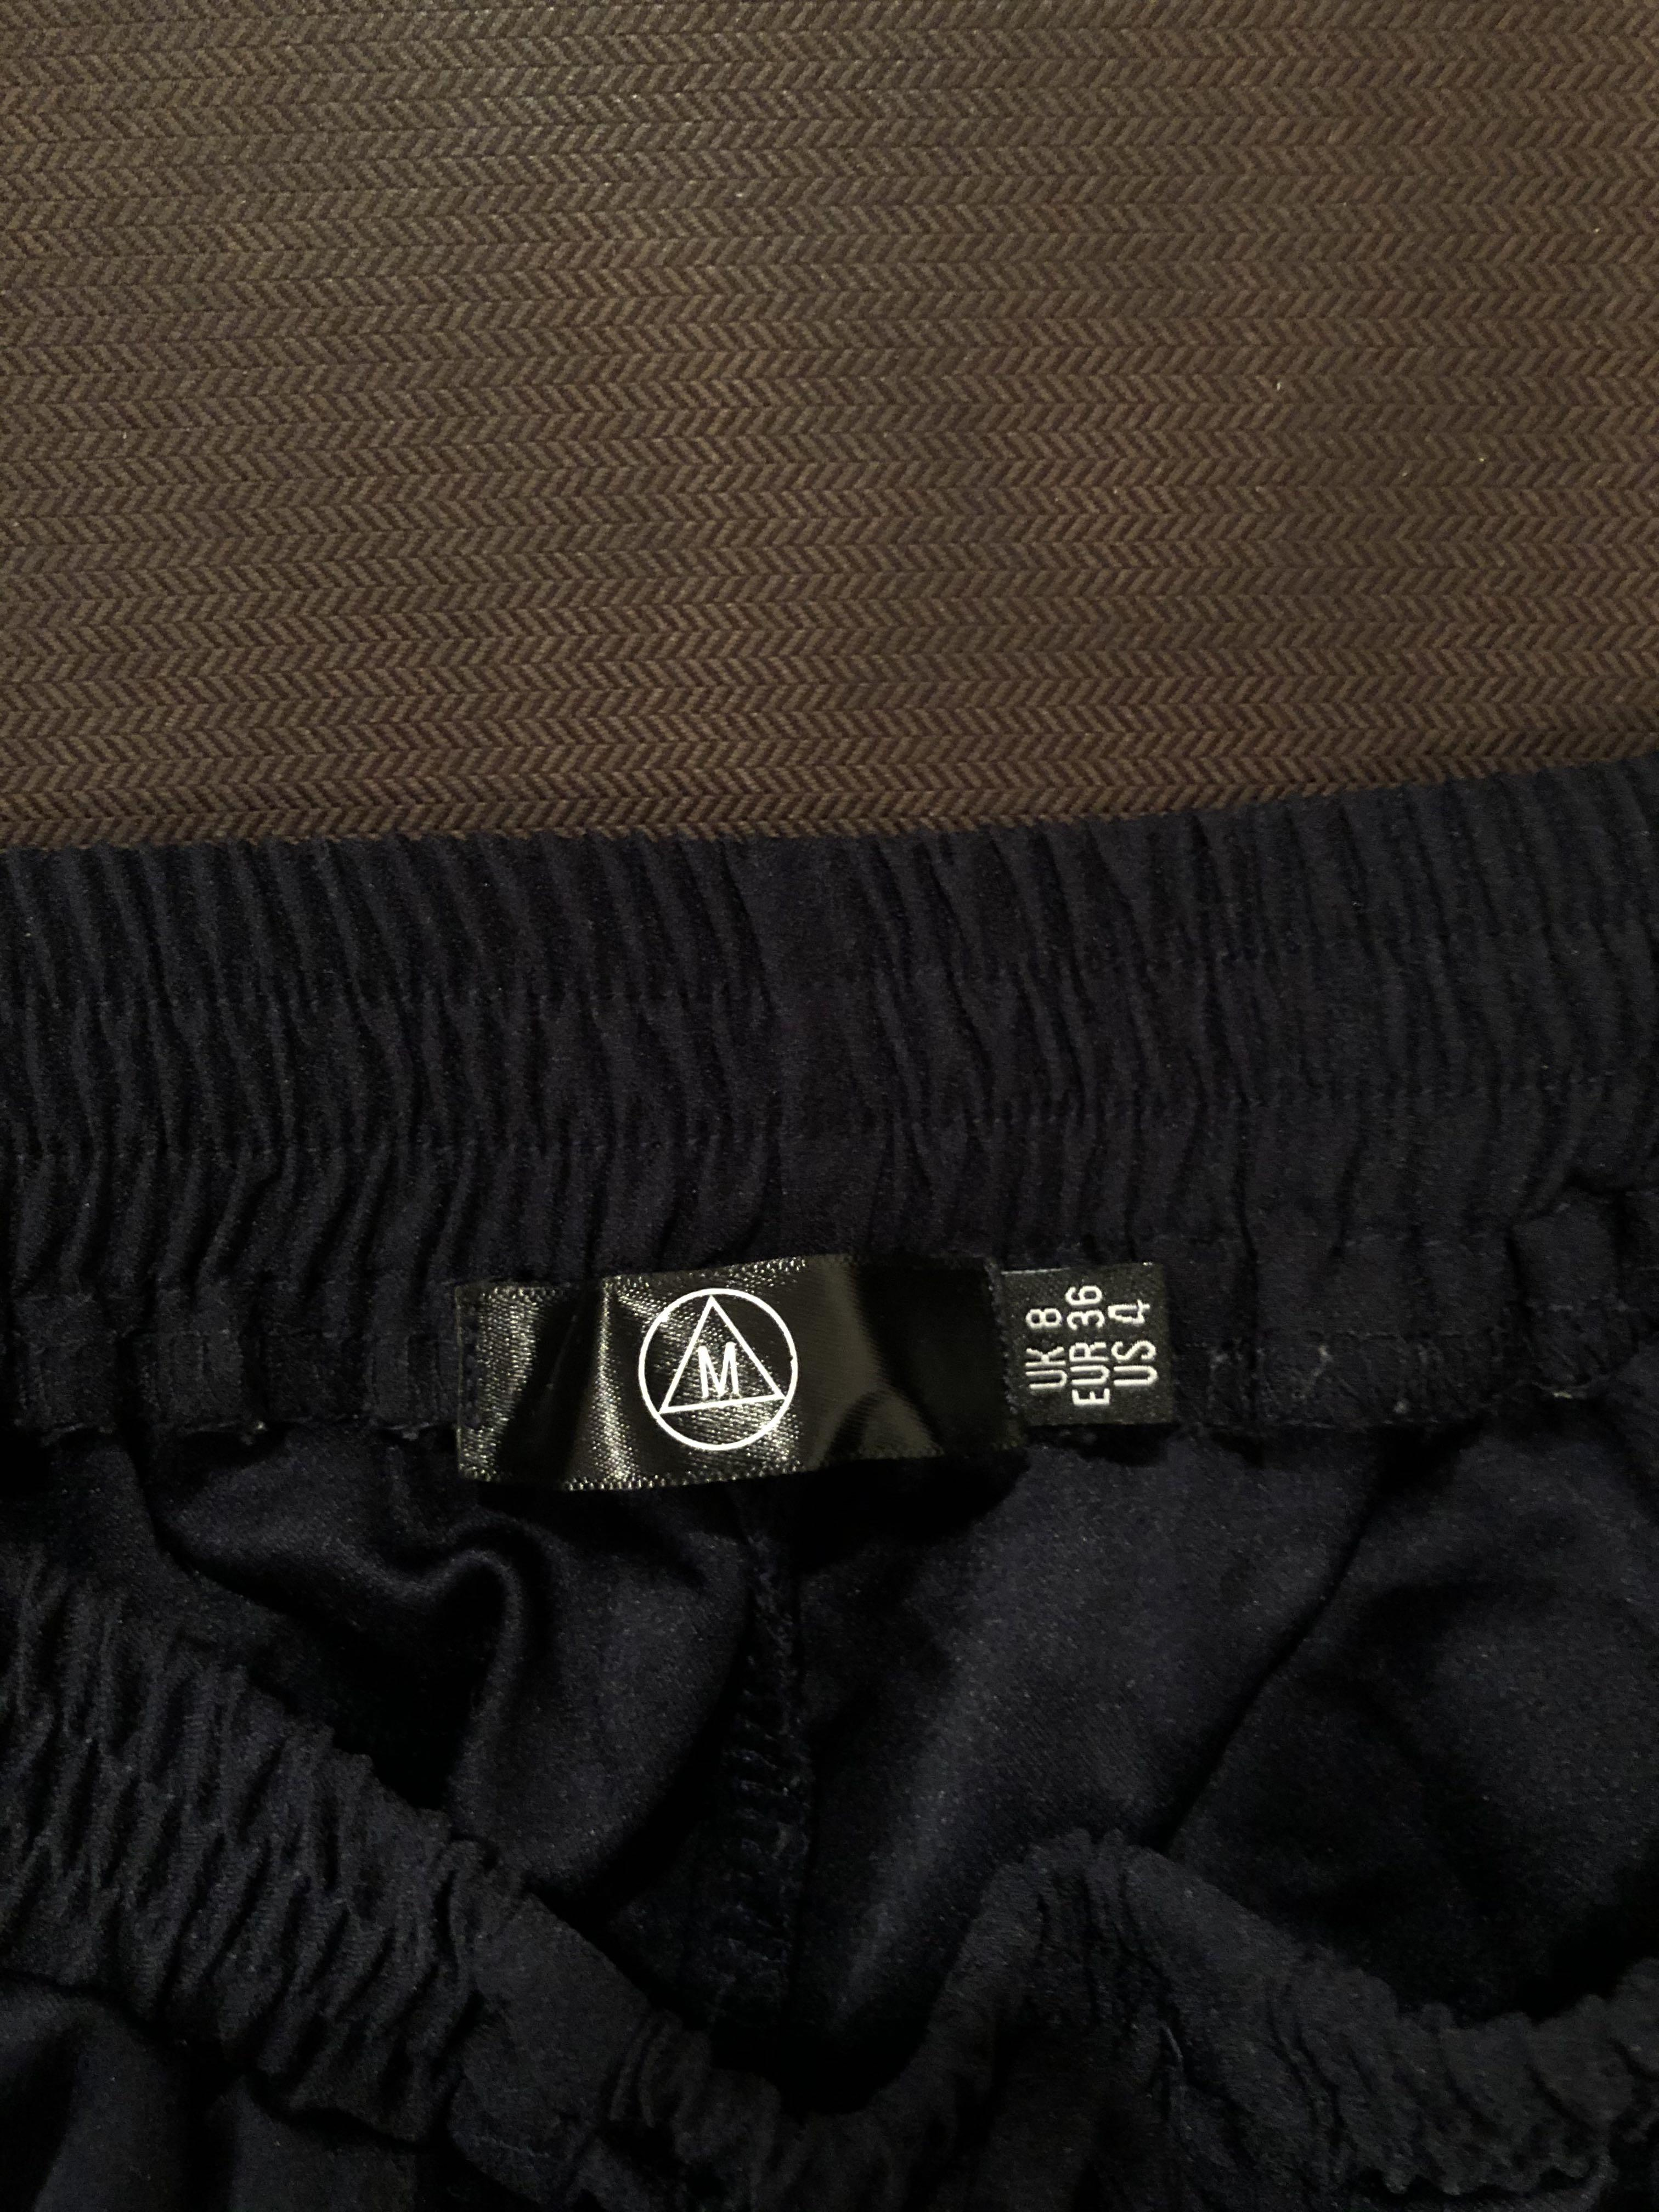 Missguided Navy Pants